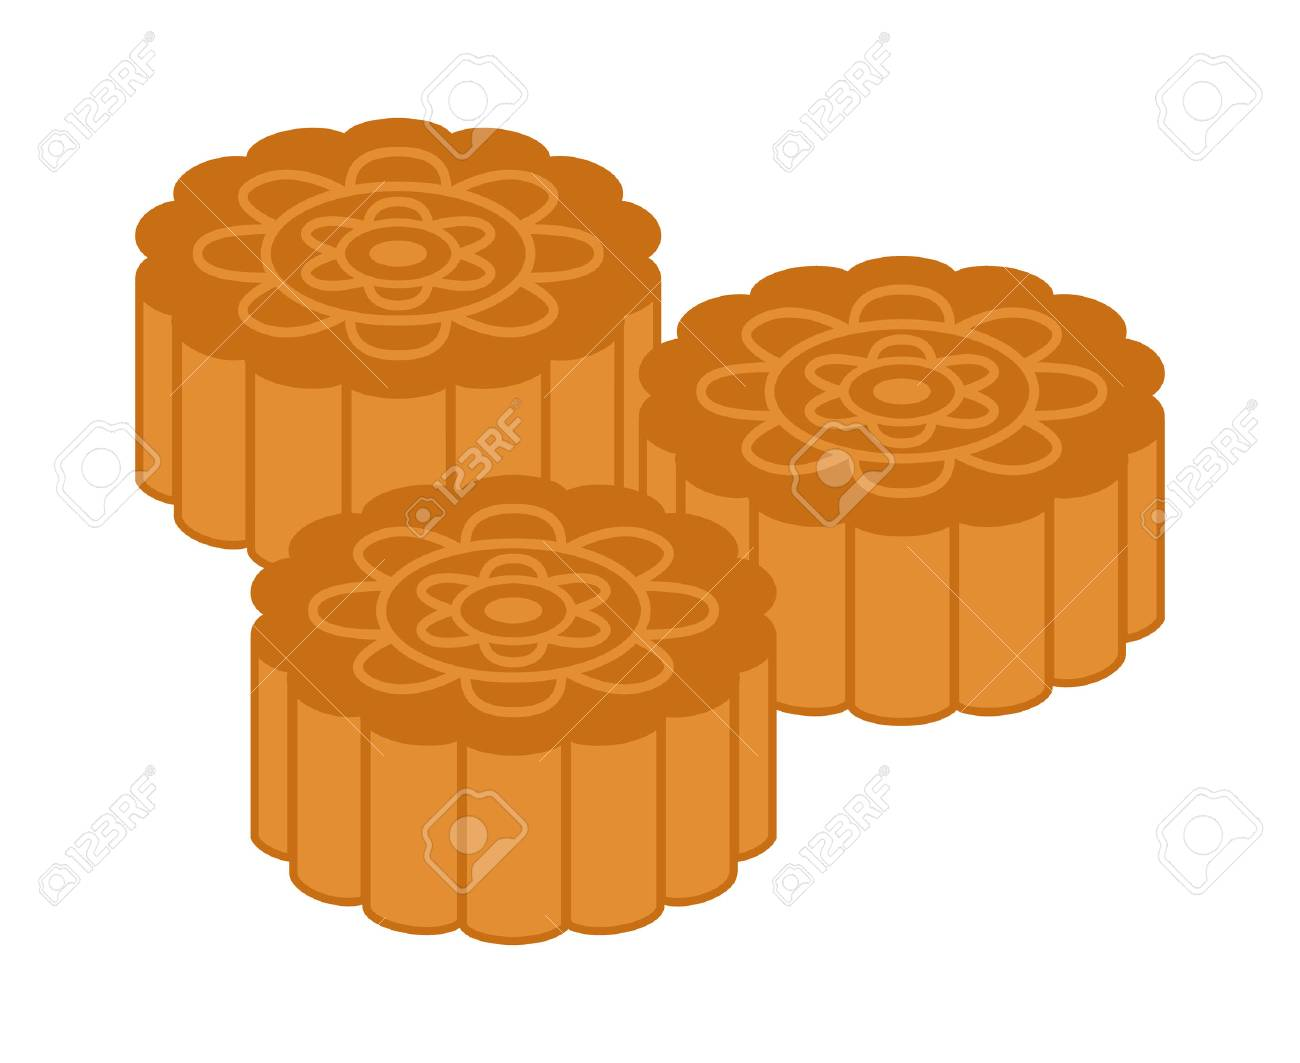 Mooncakes or moon cakes for the Mid.